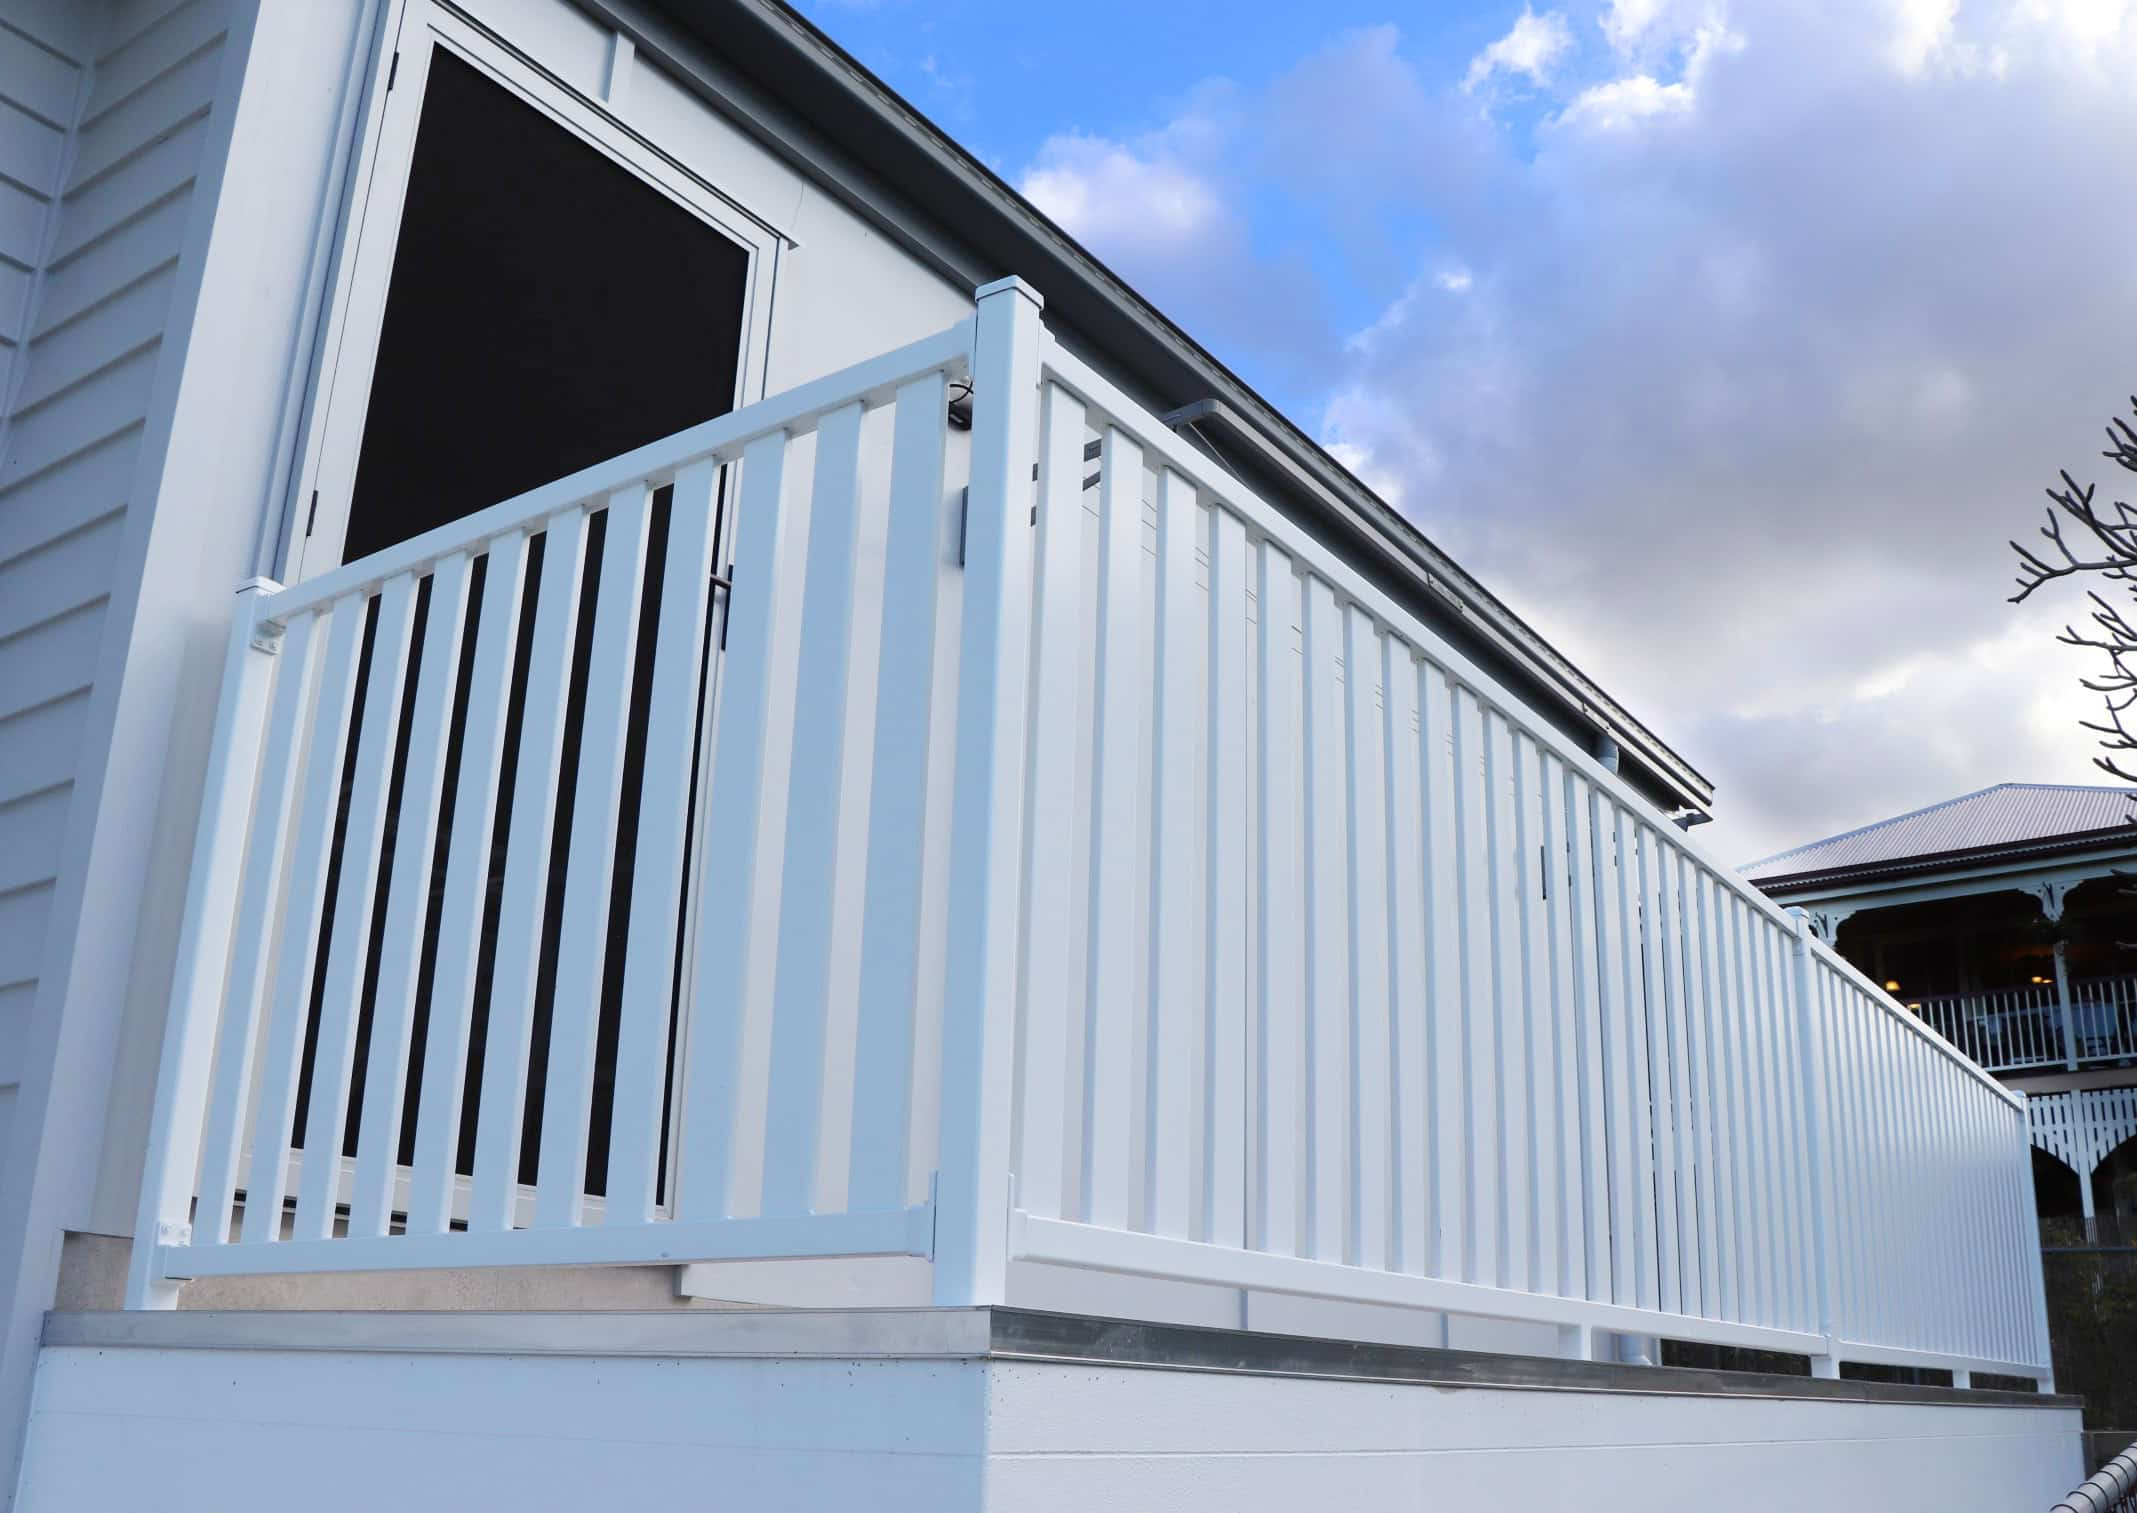 Slated Aluminium Balustrade - White